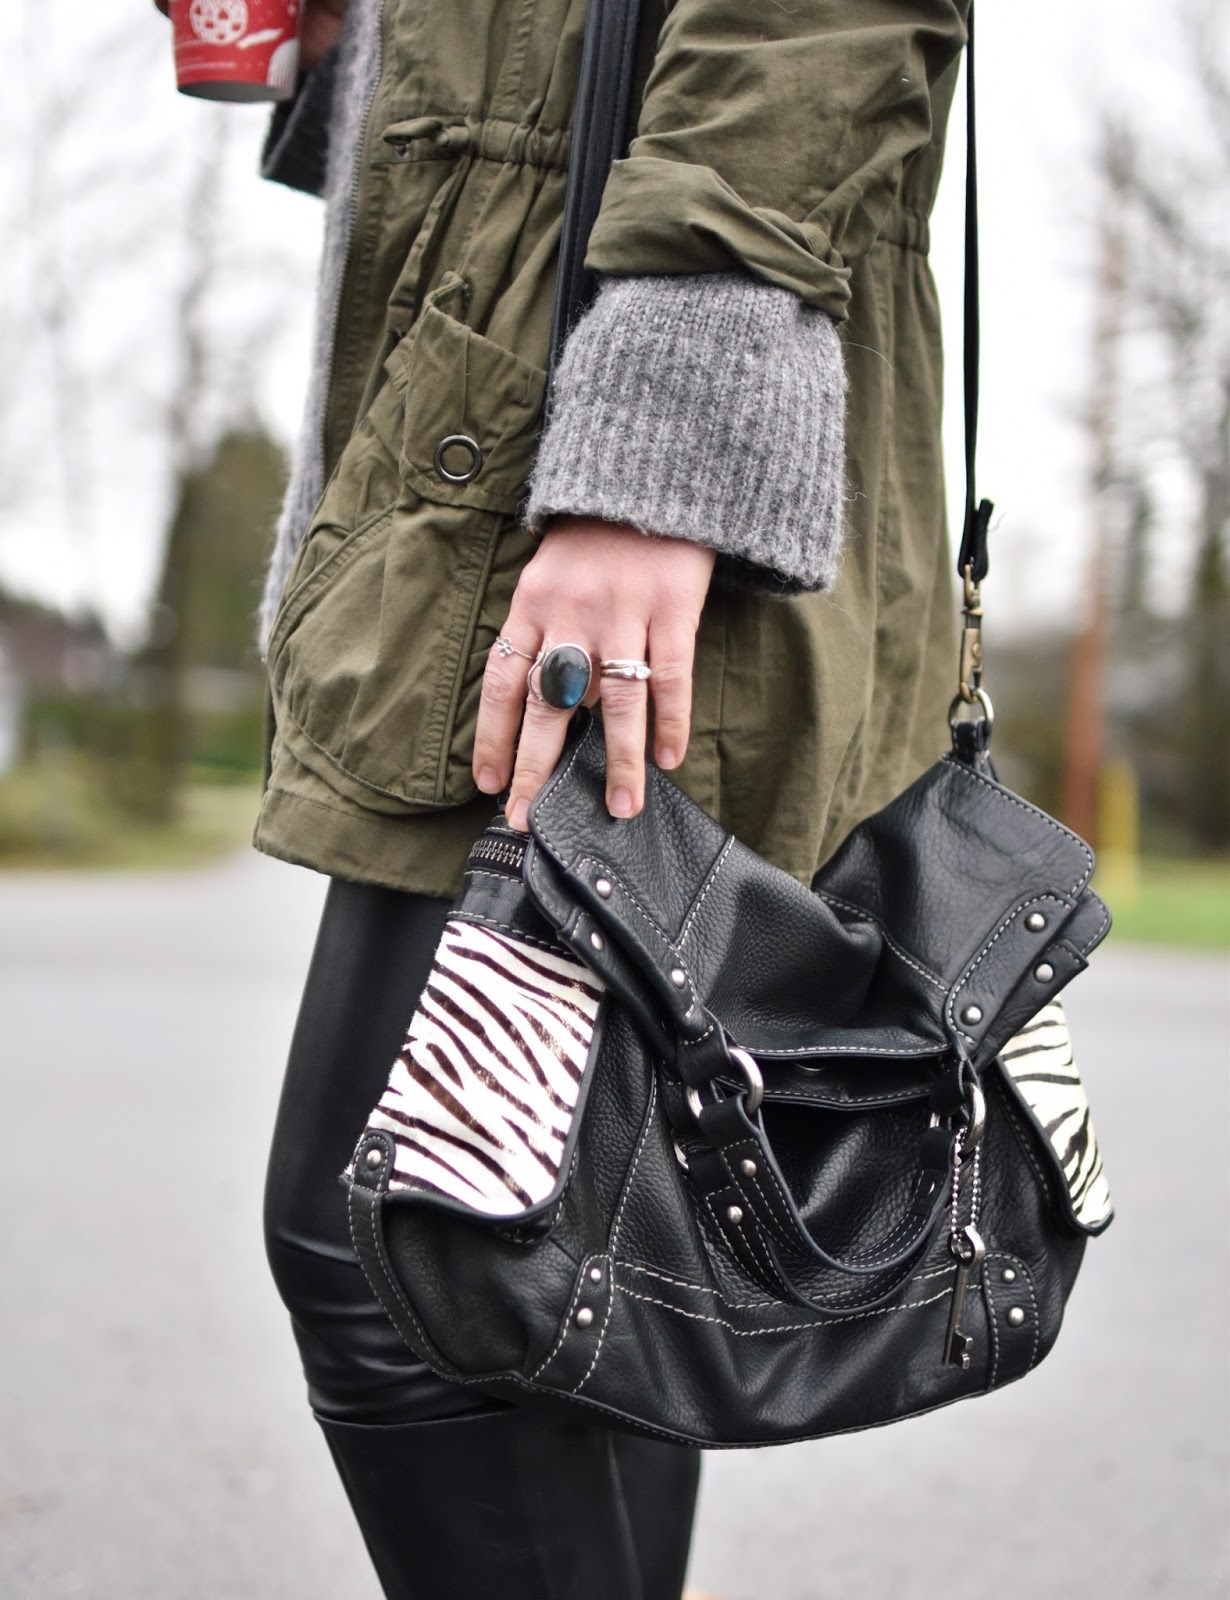 Monika Faulkner outfit inspiration - chunky wool sweater, army-style jacket, zebra-patterned Fossil bag